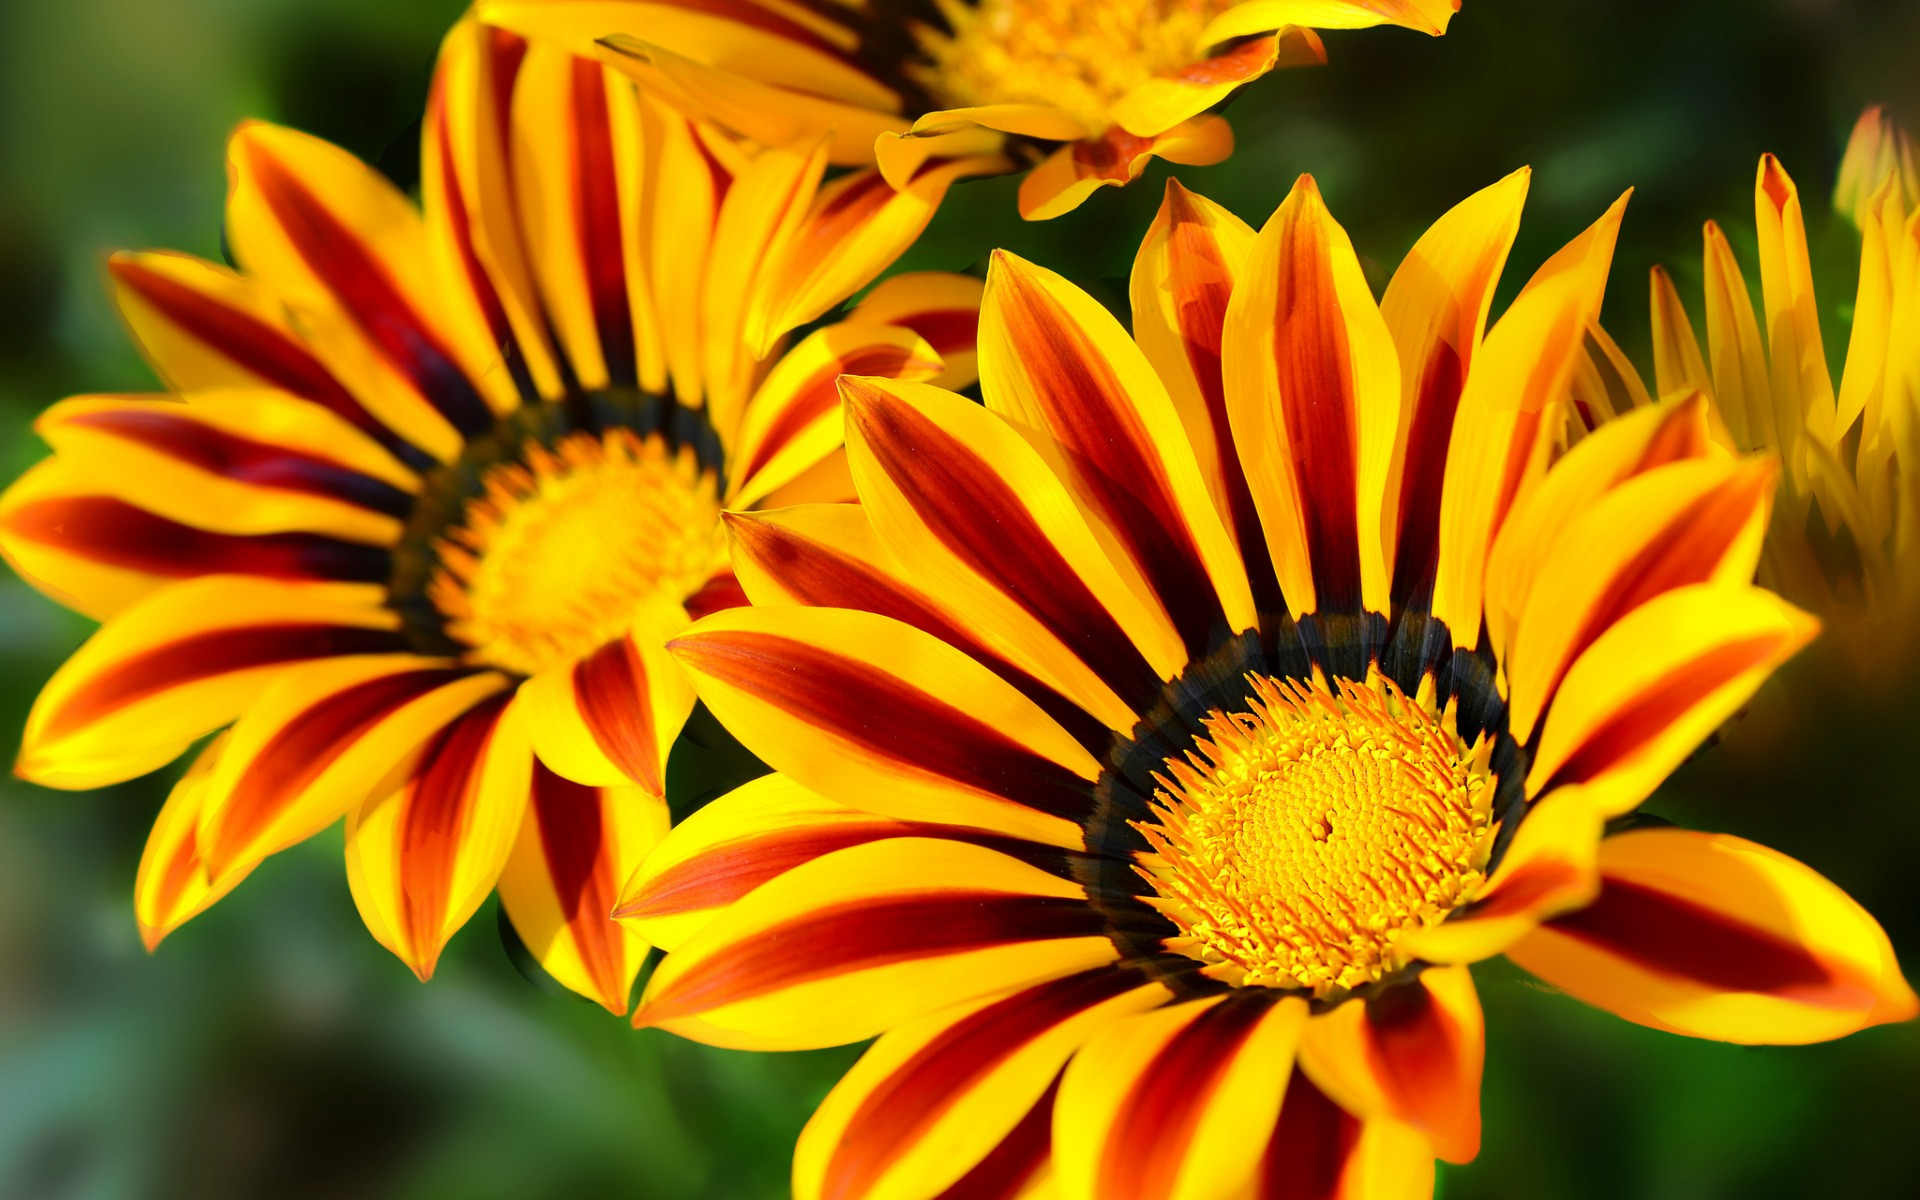 gazania wallpaper background